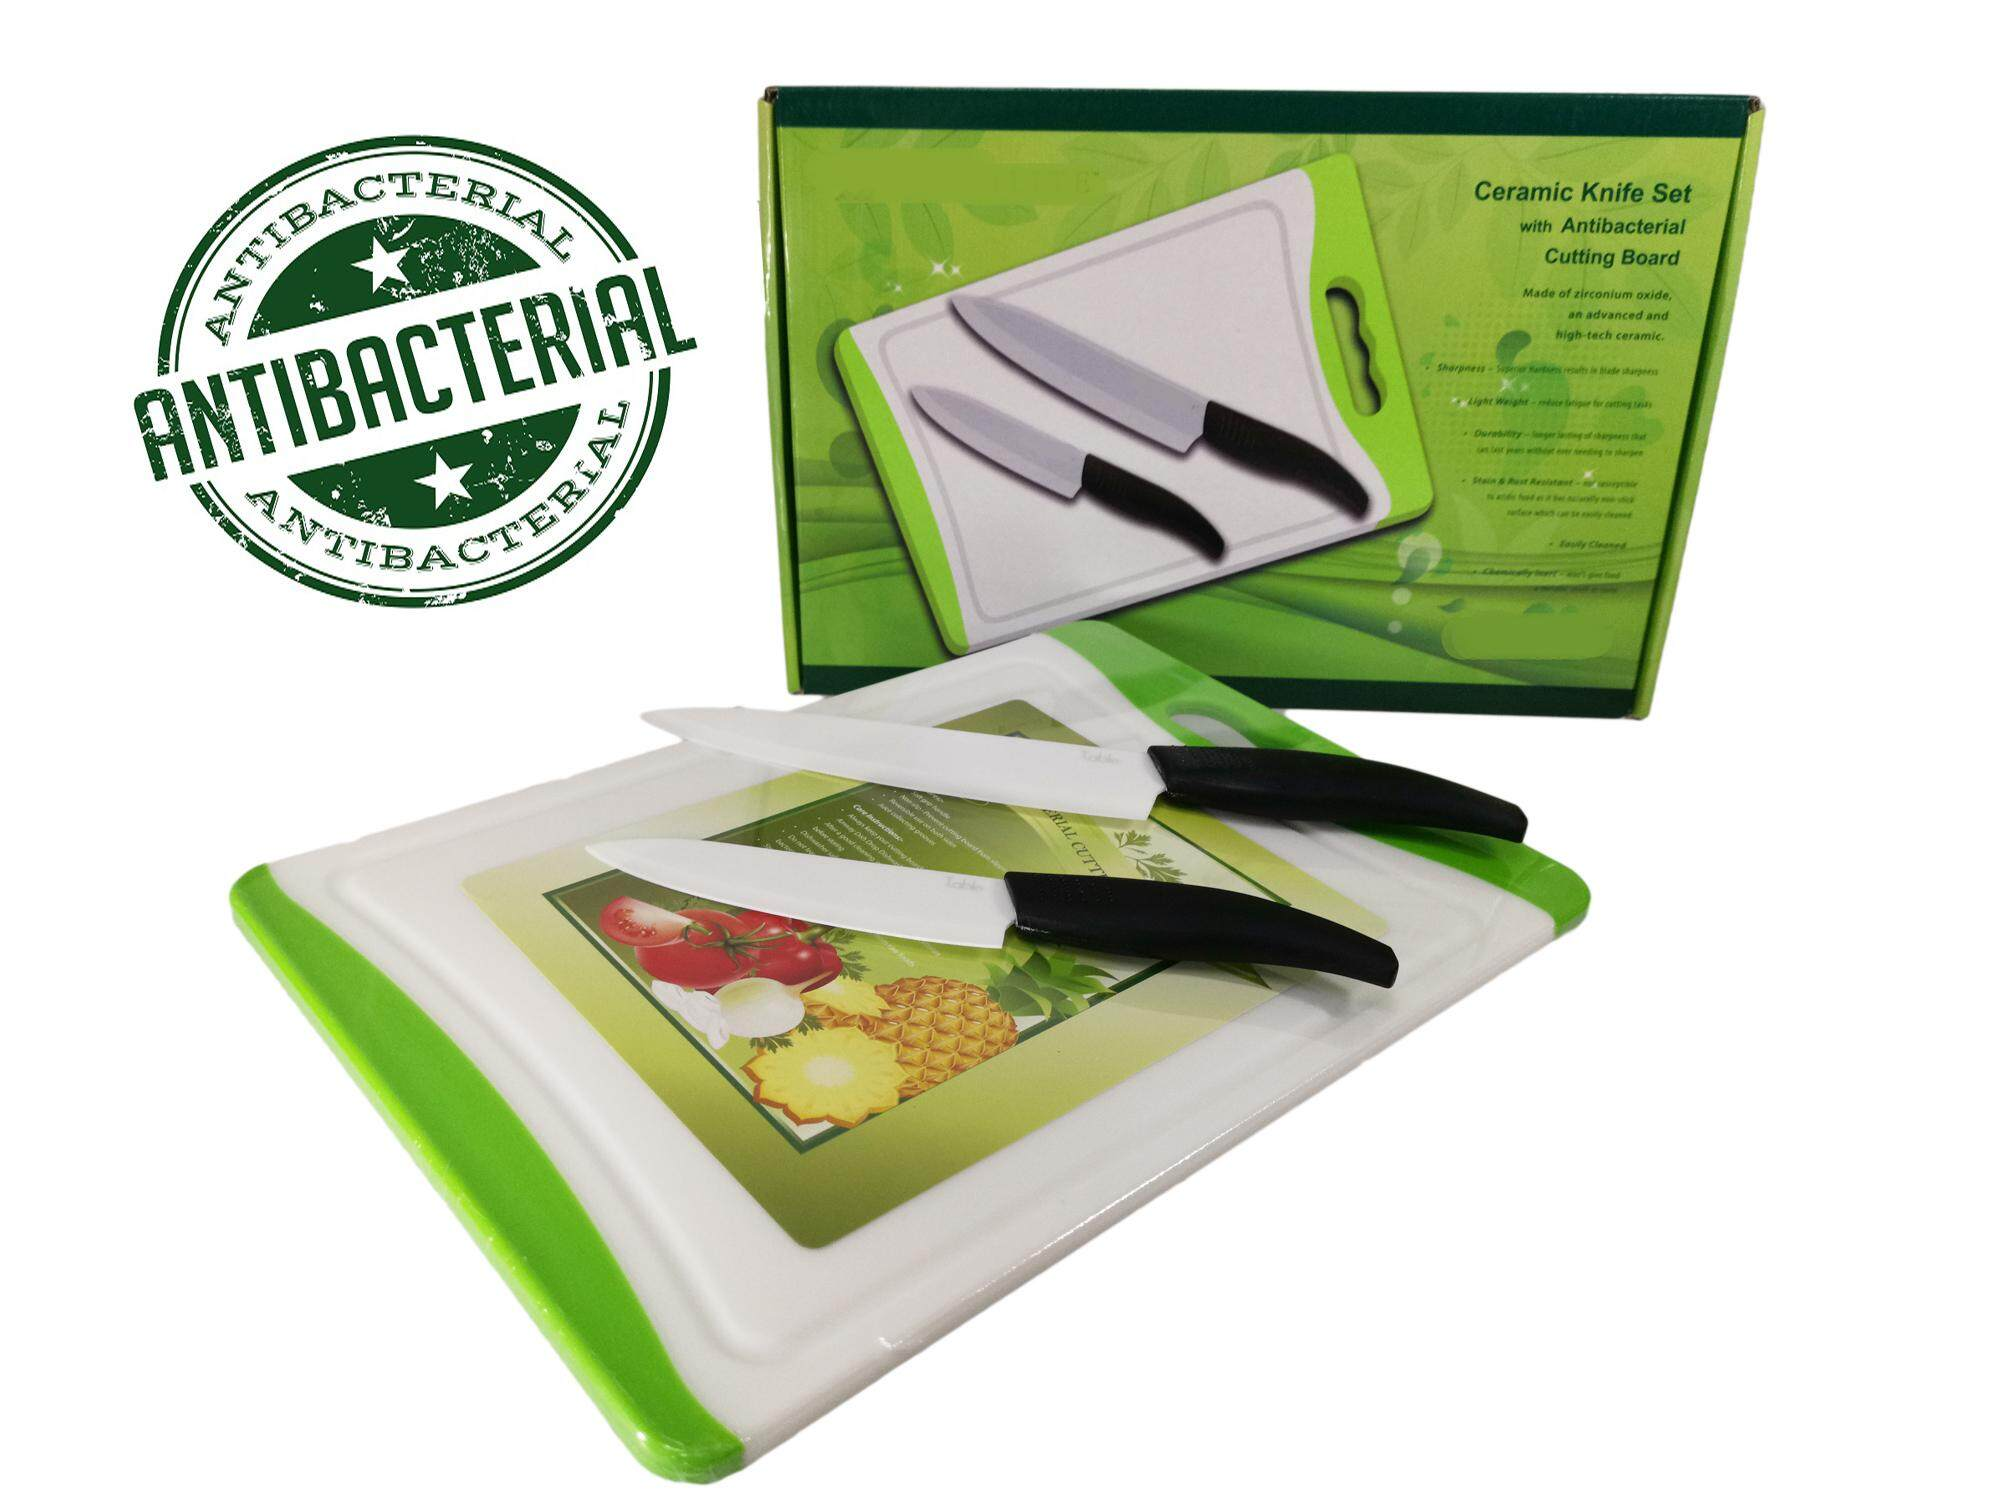 2 Pcs Ceramic Knife Set With Cutting Board By Blnk.